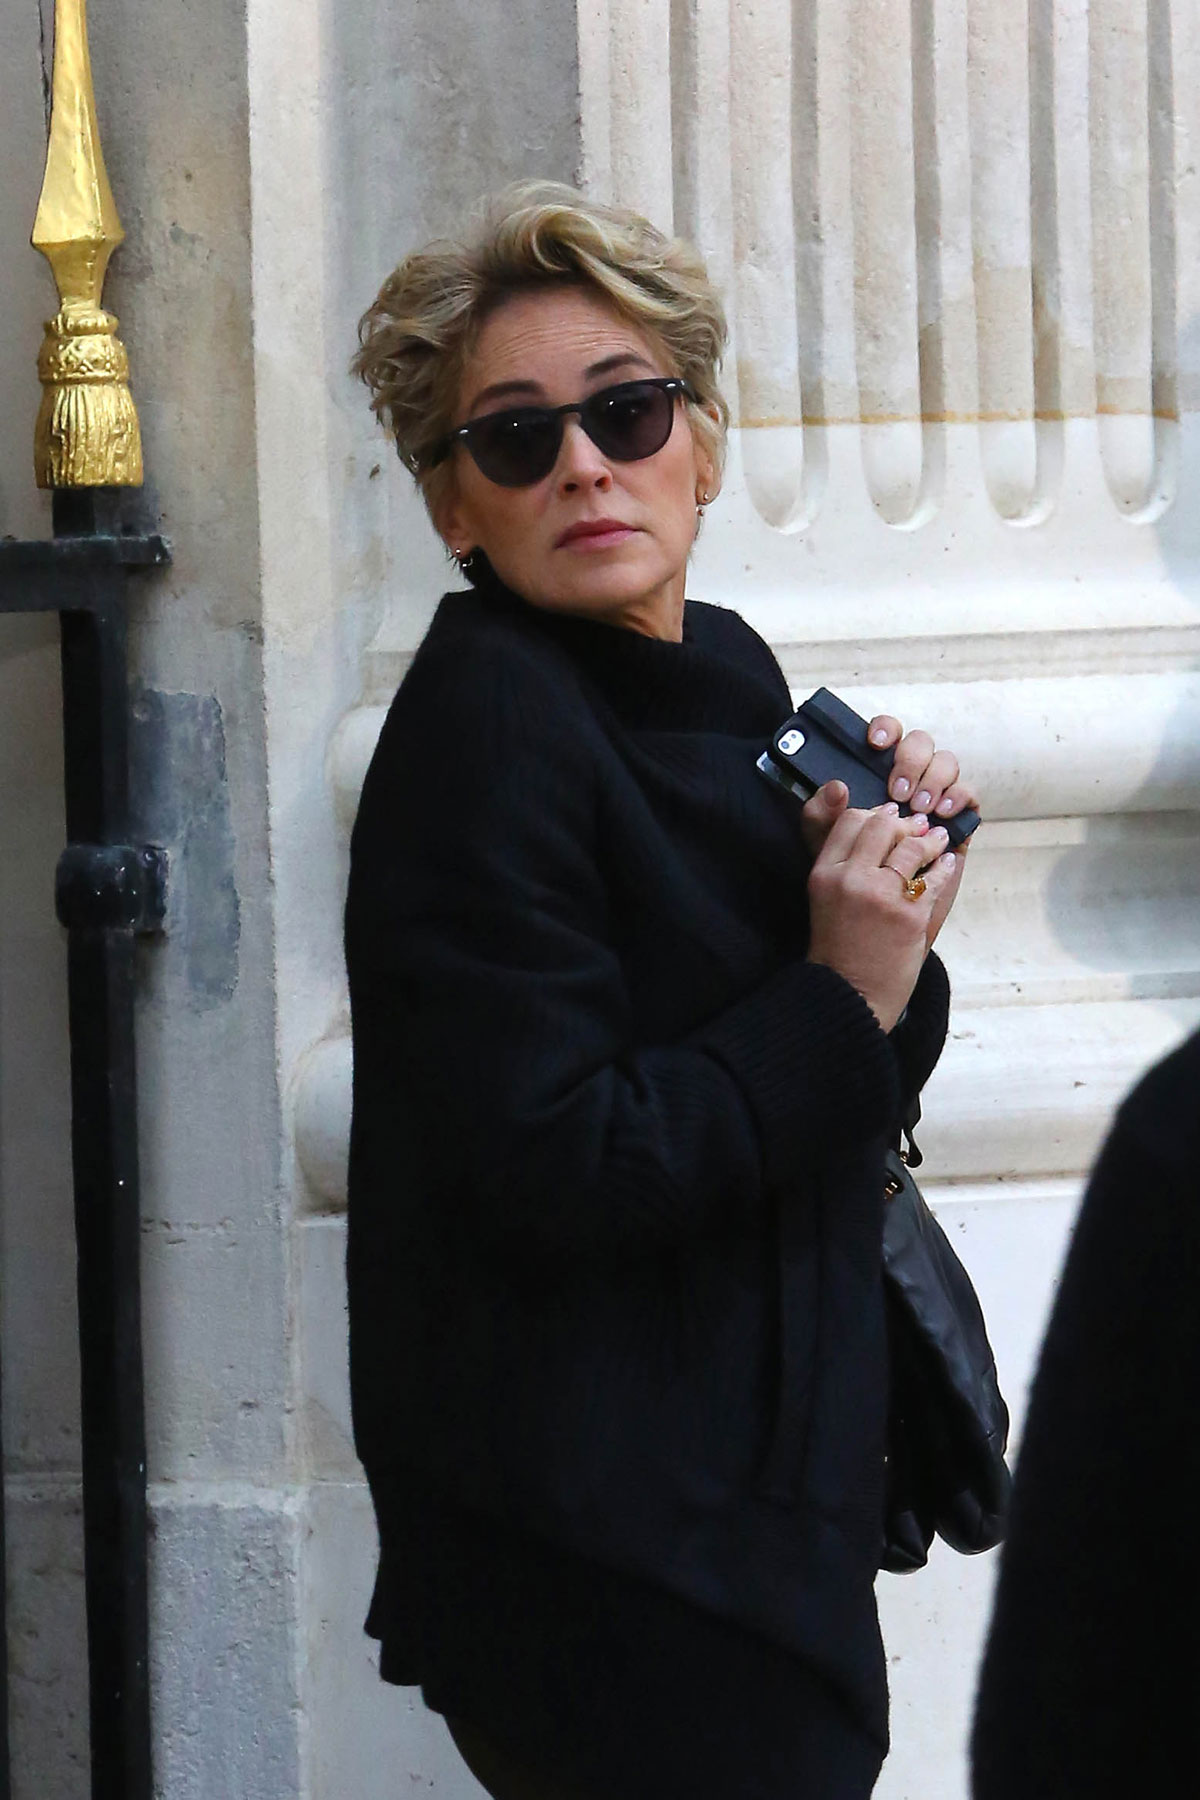 Sharon Stone On The Set Of New Alain Afflelou Commercial